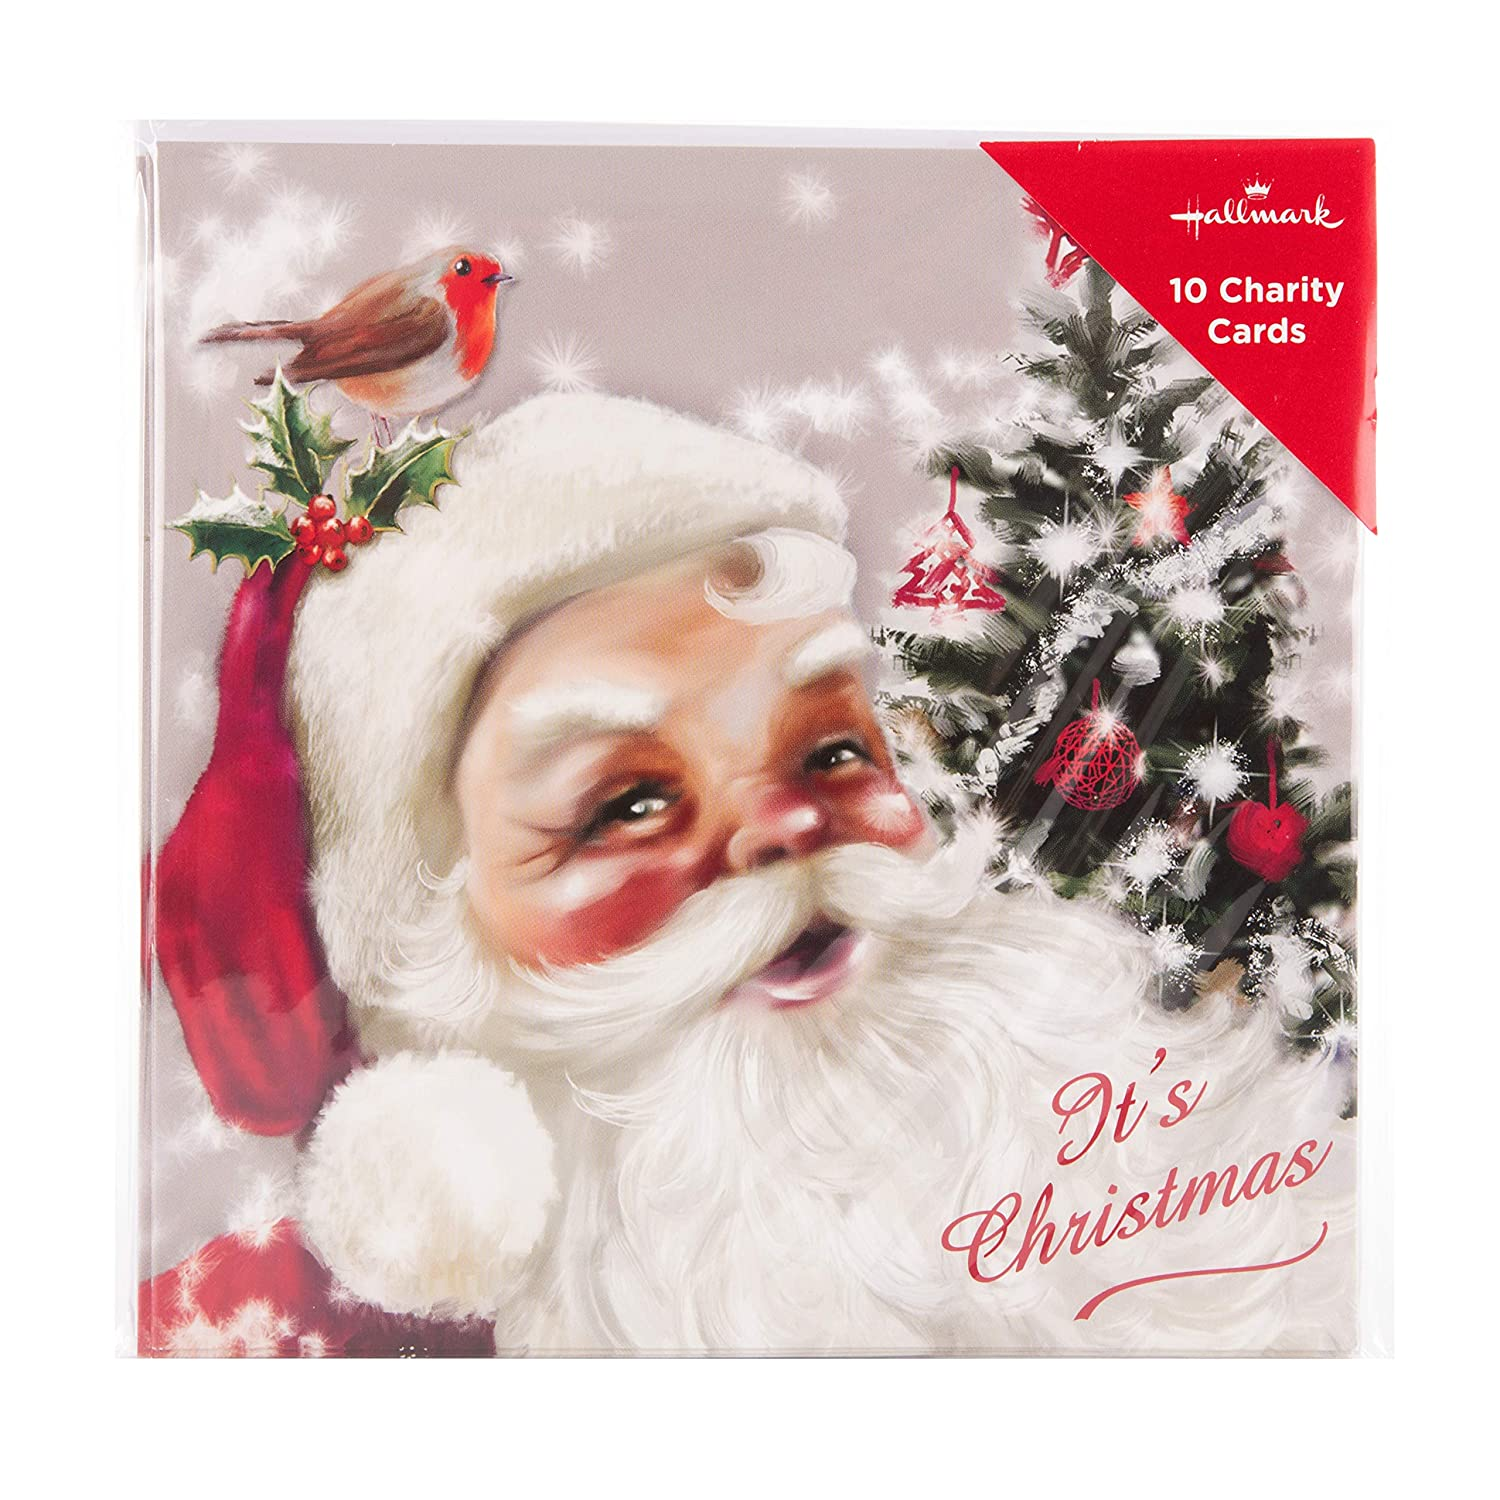 Pack of 10 in 1 Design Illustrated Santa Charity Christmas Cards from Hallmark